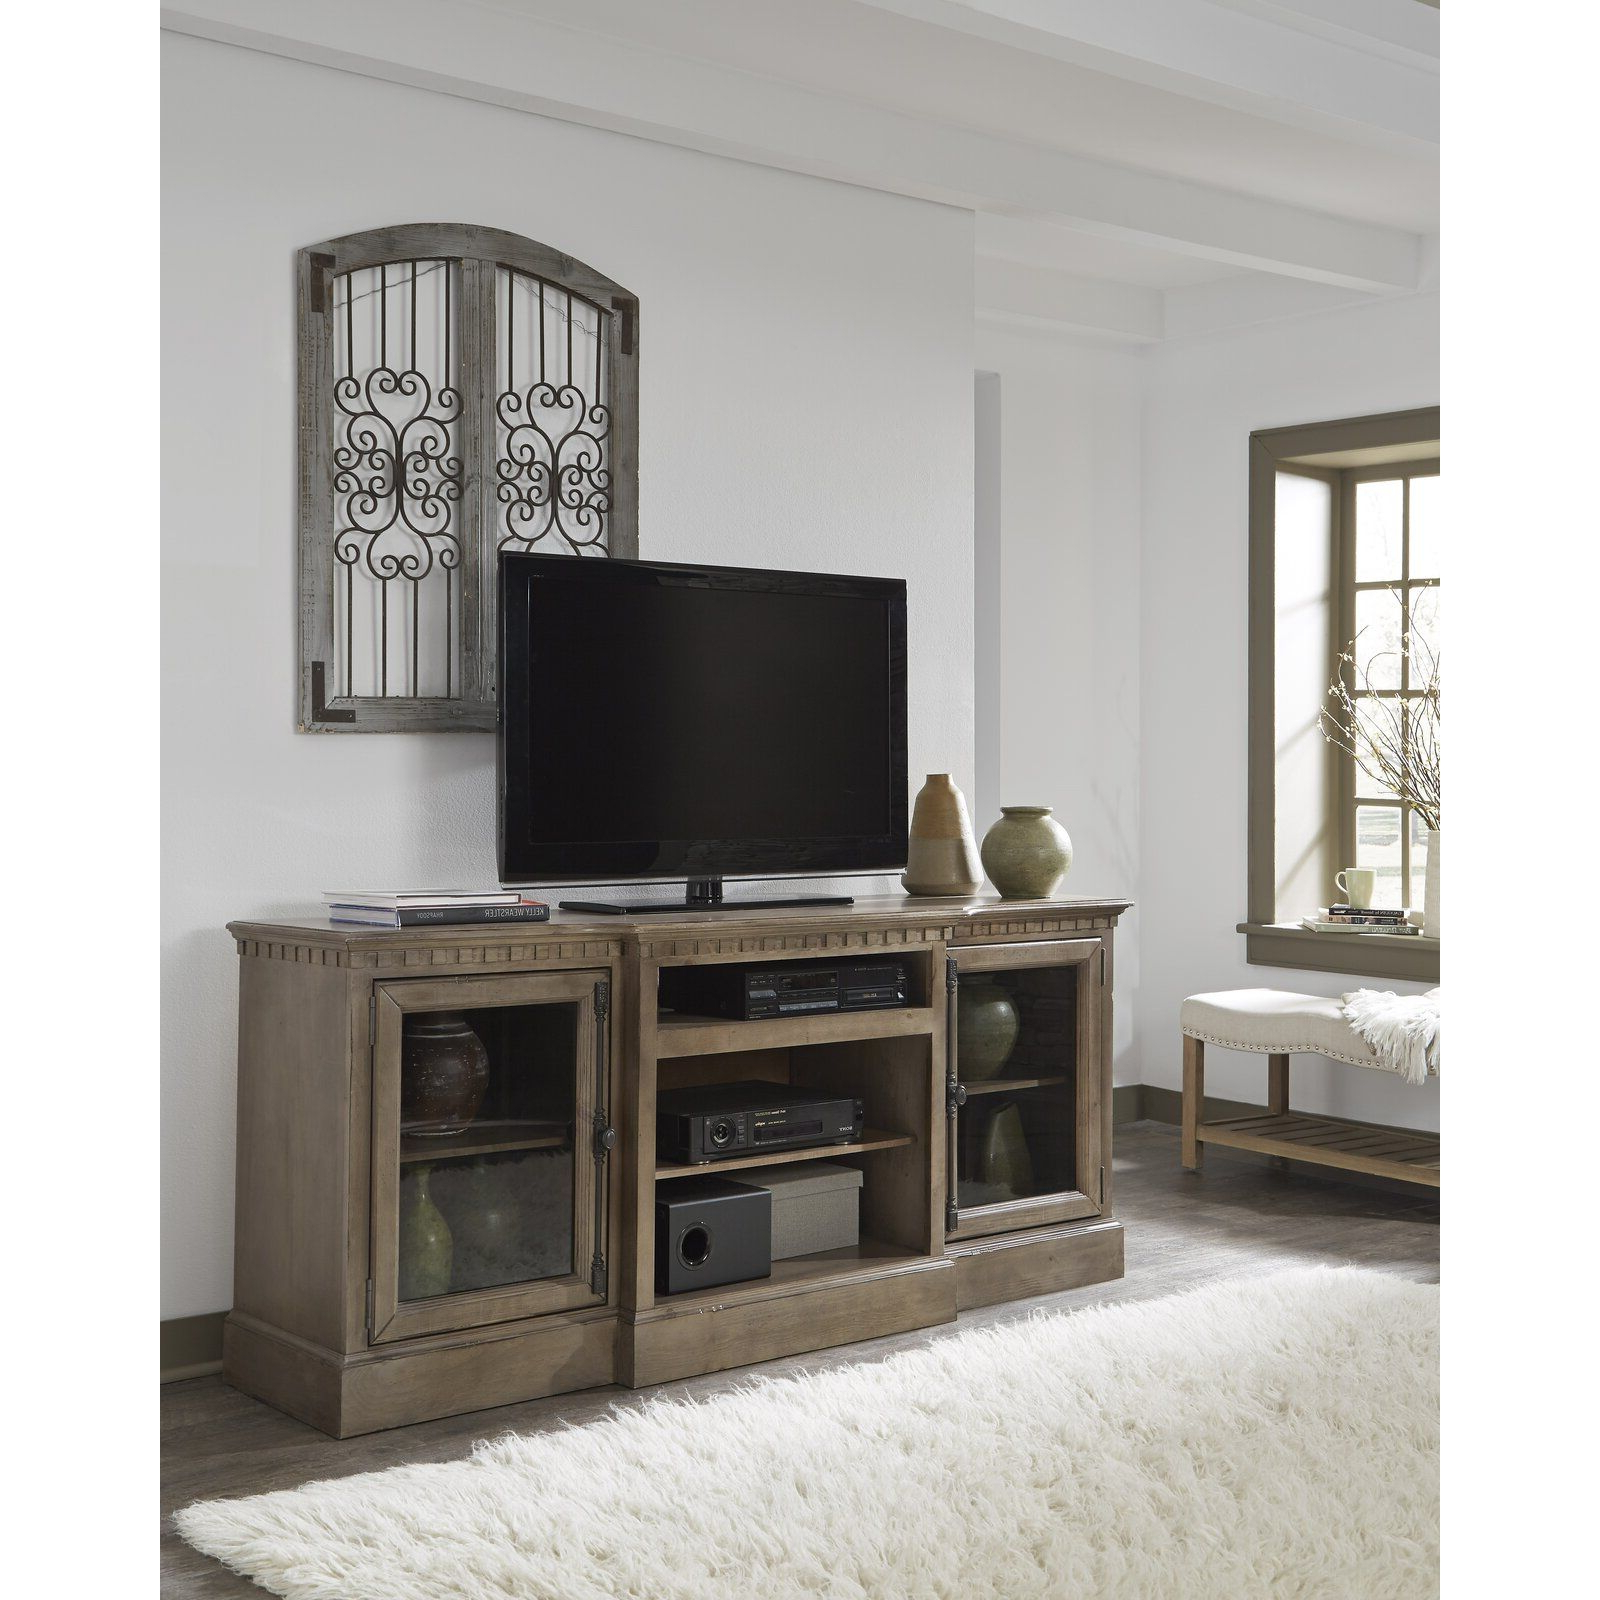 """Greyleigh Marbleton Tv Stand For Tvs Up To 70"""" & Reviews For Griffing Solid Wood Tv Stands For Tvs Up To 85"""" (View 12 of 20)"""